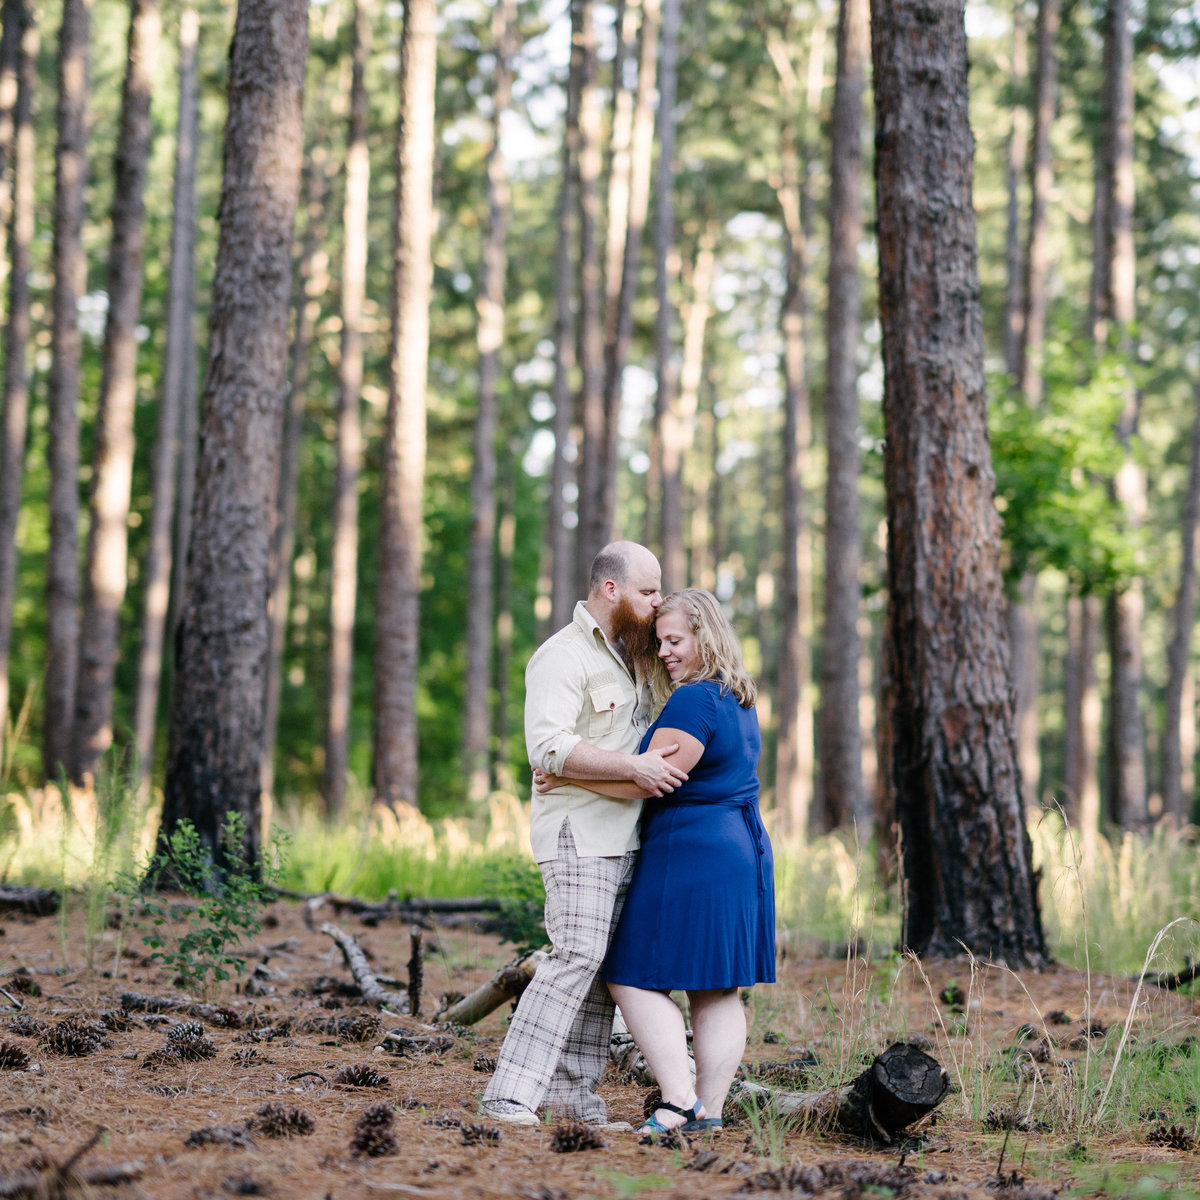 Kathy+Jonah|DukeForestPortraitSession-16